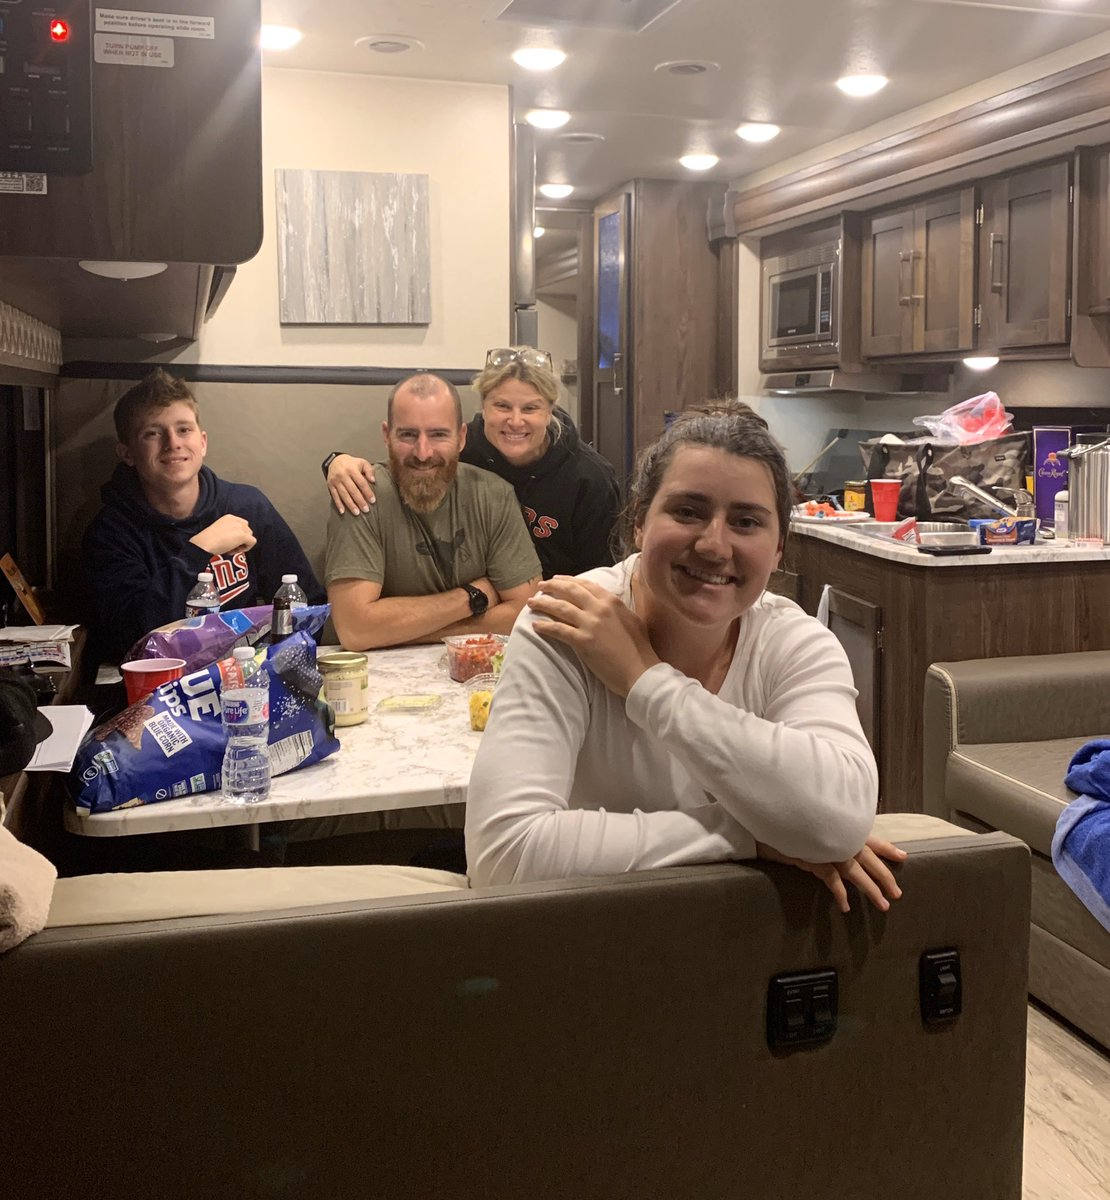 My wonderful wife gave me the best 40th birthday gift I could've got....wiped the calendar clean for 2 weeks and rented us an RV!